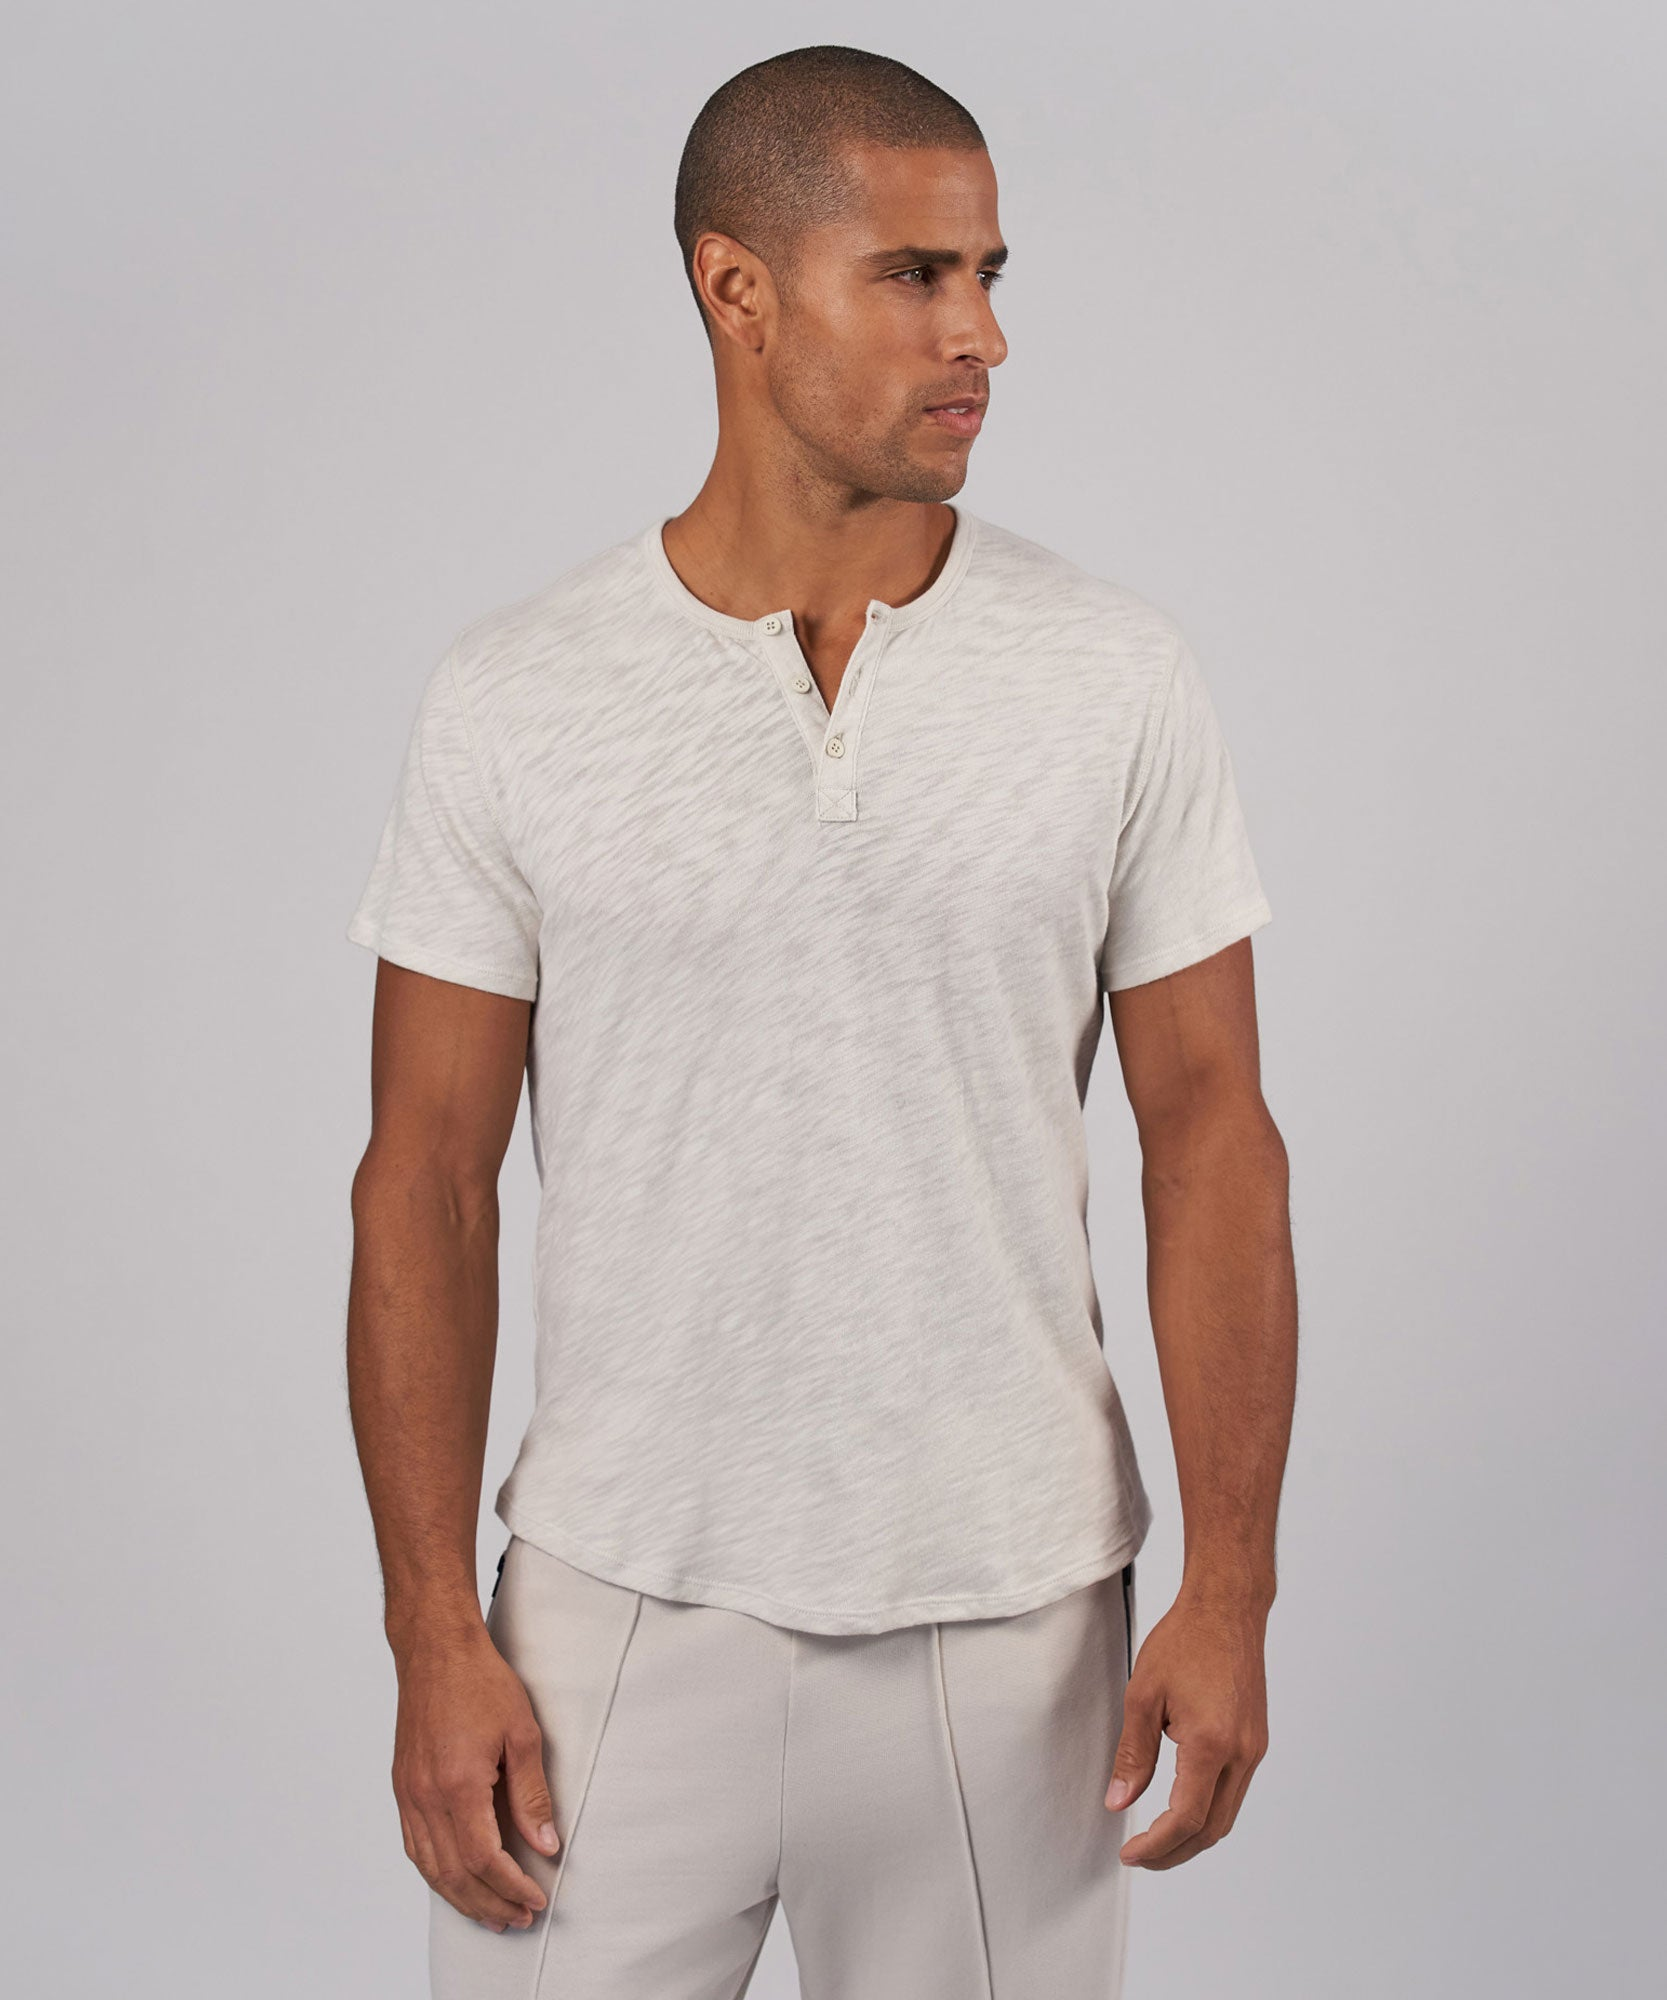 Gesso Combo Slub Jersey Short Sleeve Henley - Men's Short Sleeve T-Shirt by ATM Anthony Thomas Melillo